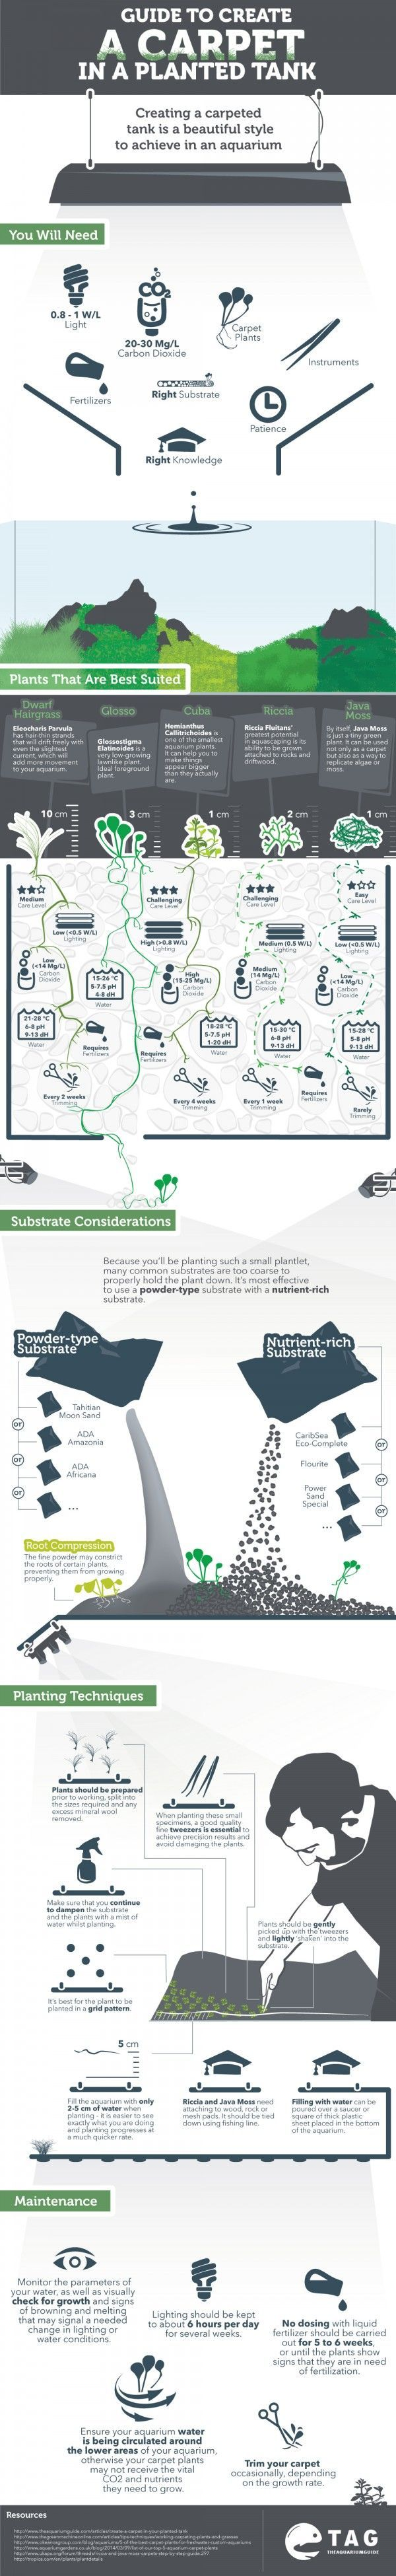 taxonomic guide to freshwater plankton